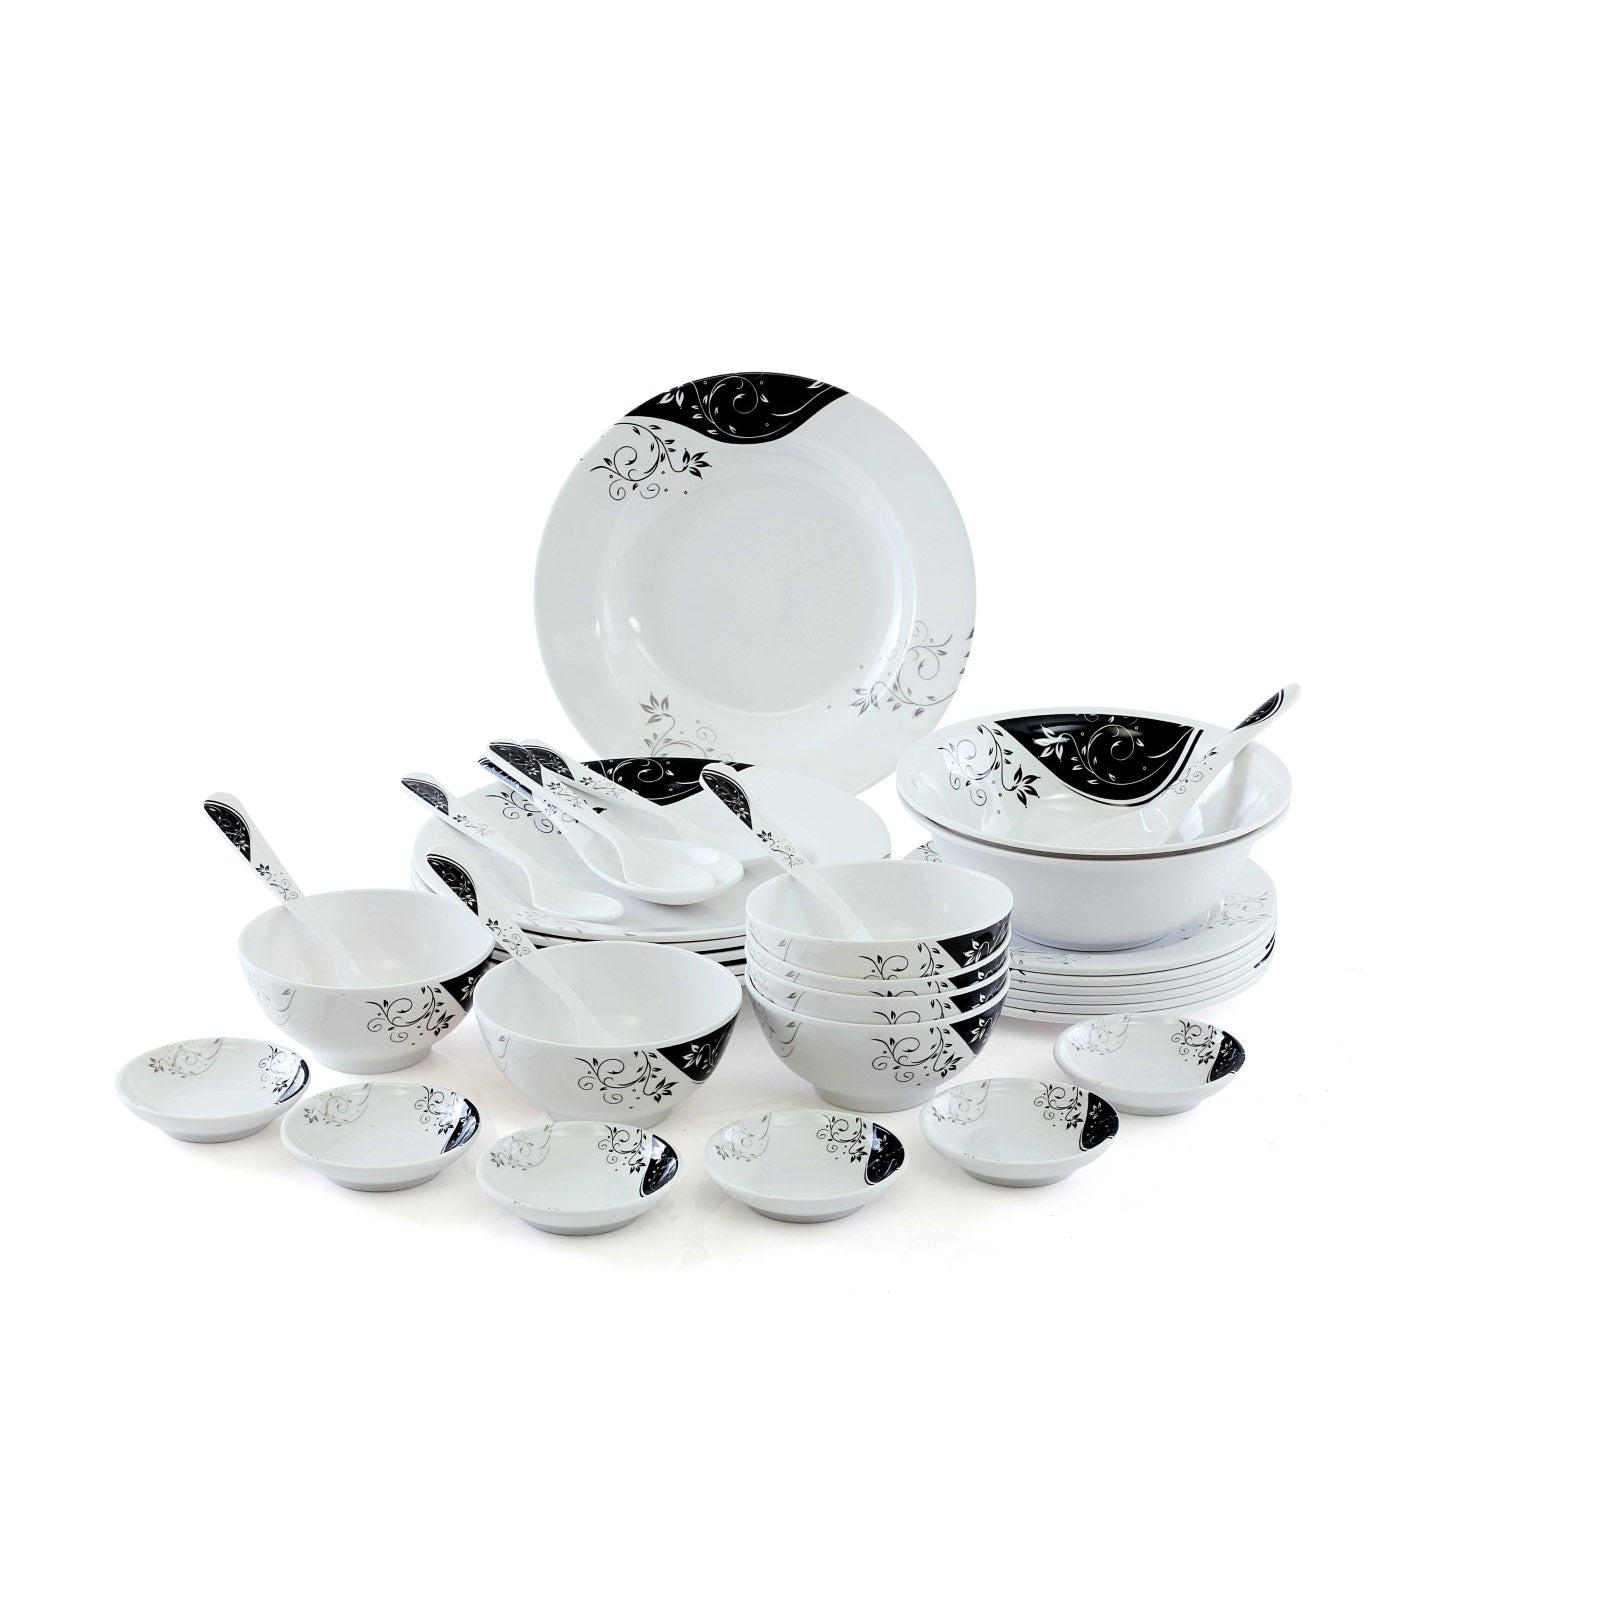 Royalford RF6972 Melamine Ware Dinner Set, 35 Pcs